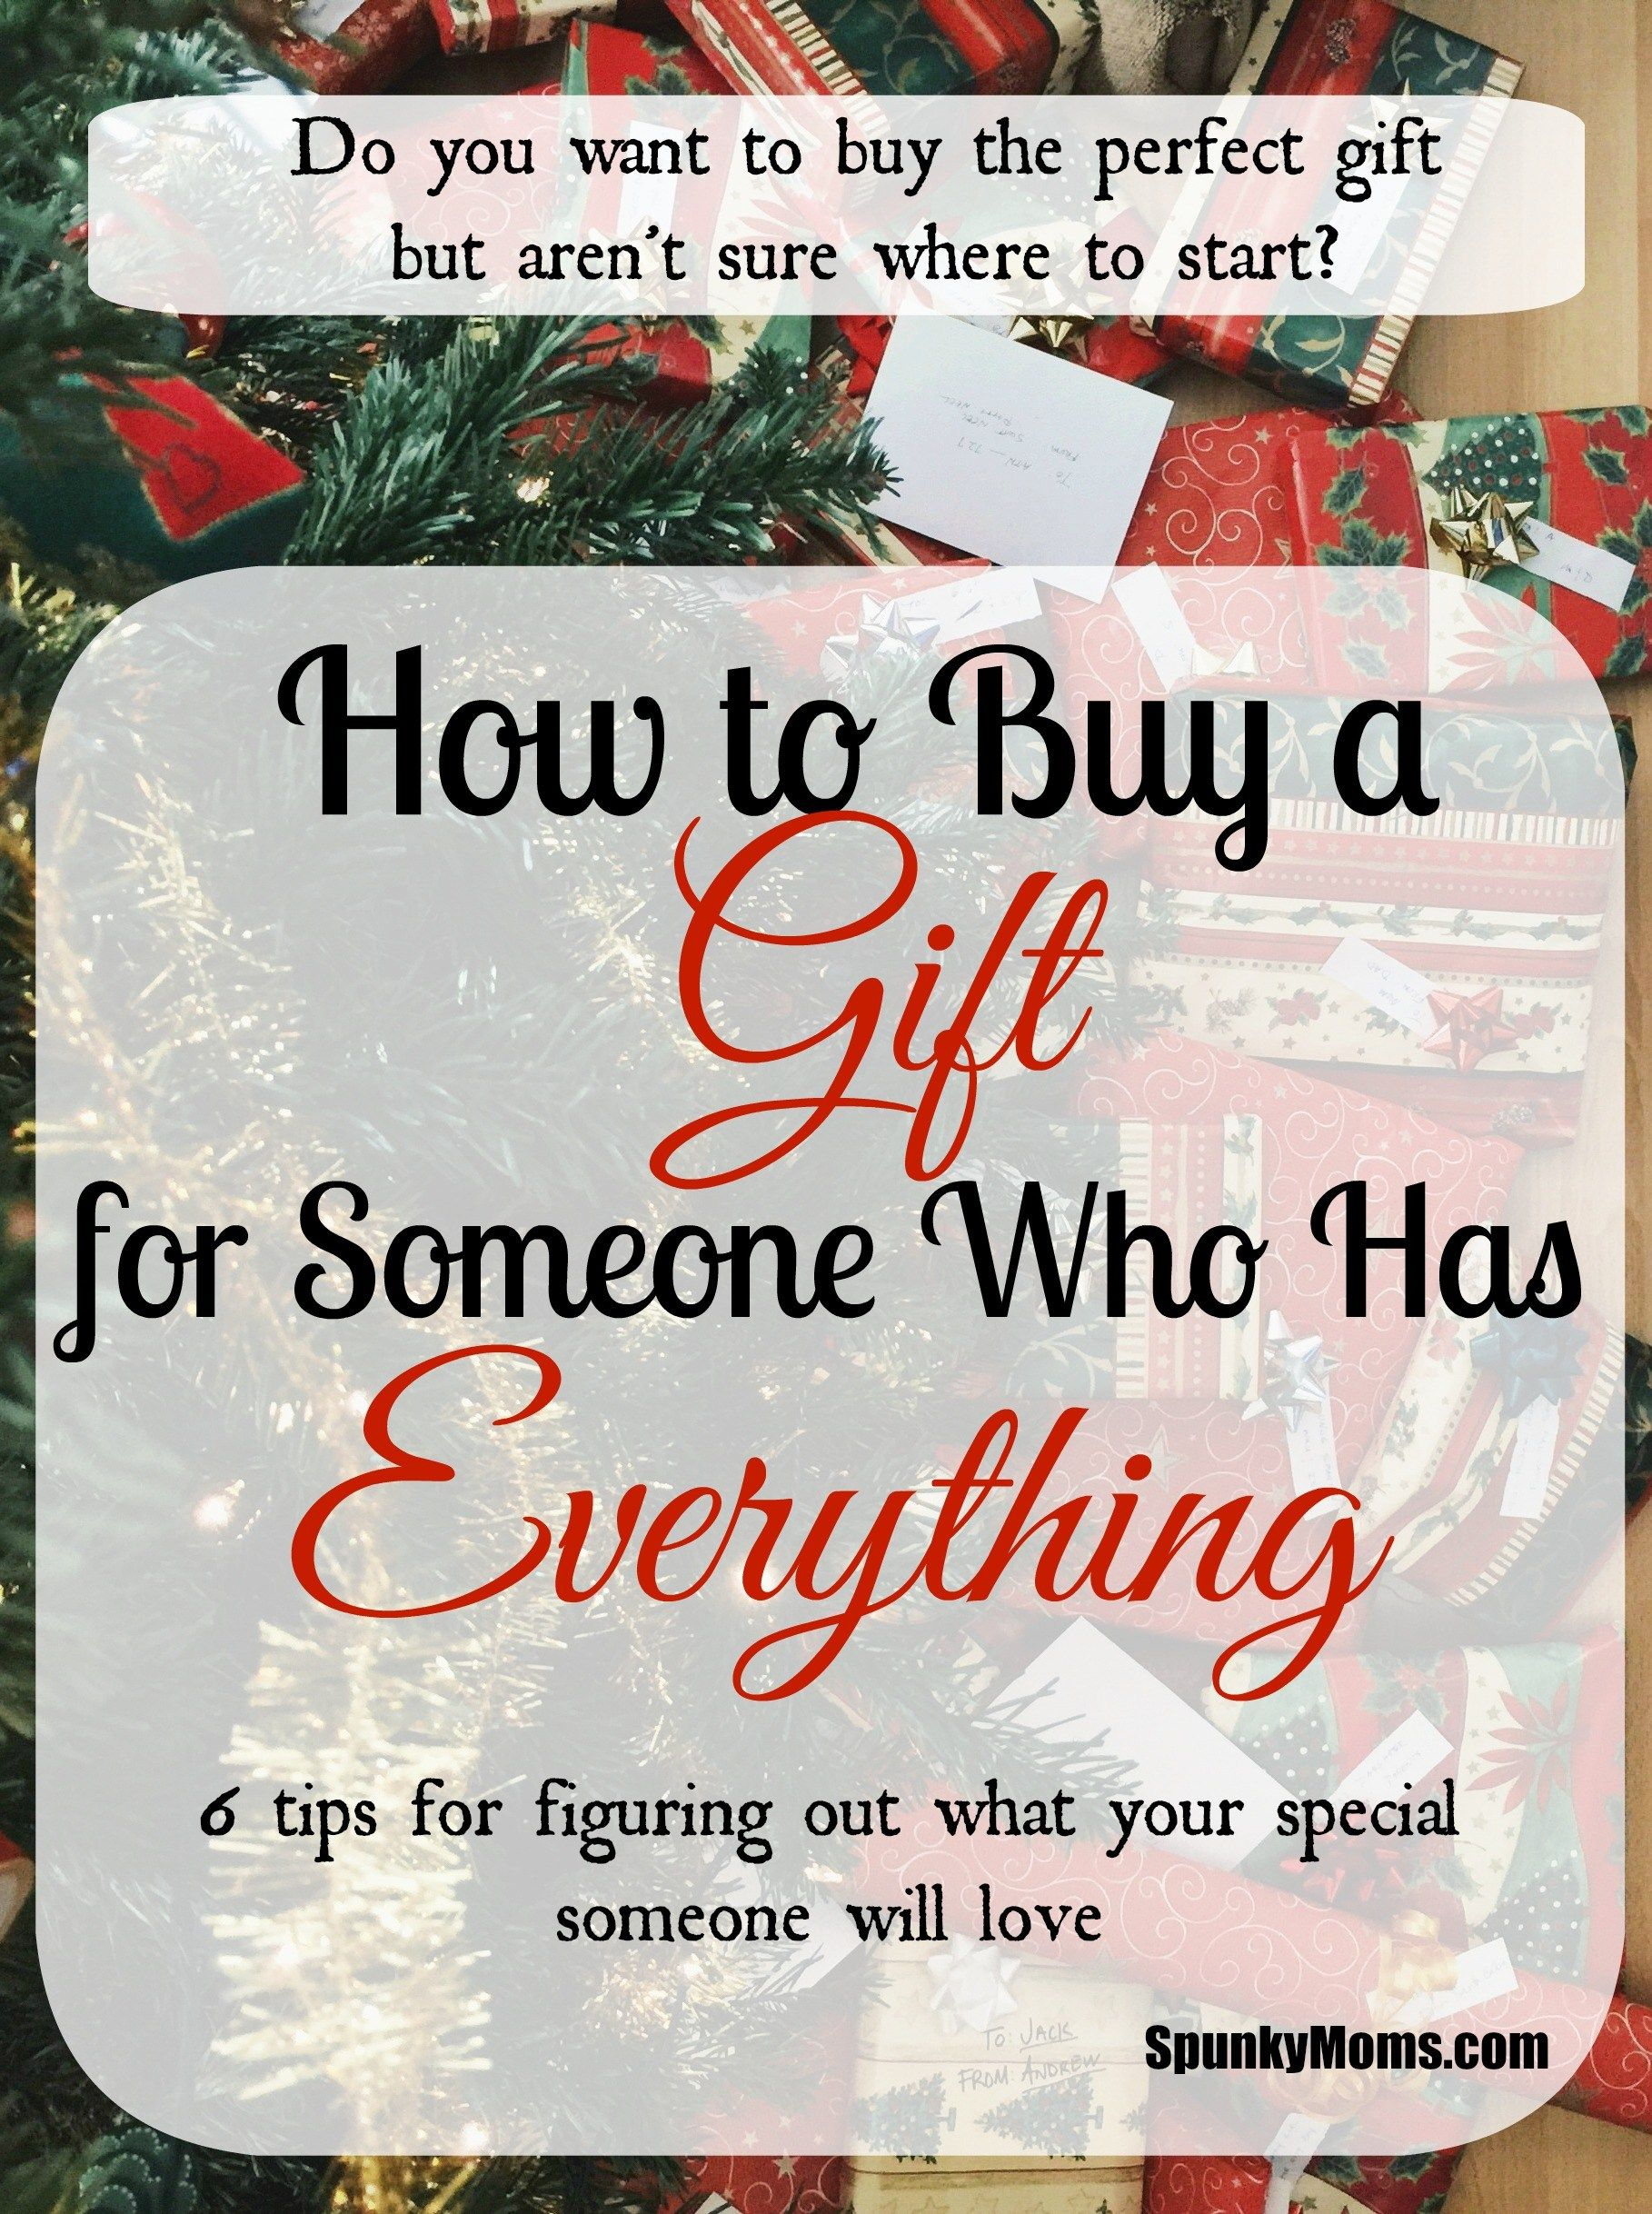 Need To Find The Perfect Gift But Aren T Sure Where Start Here Are 6 Tips For Finding Someone Who Has Everything